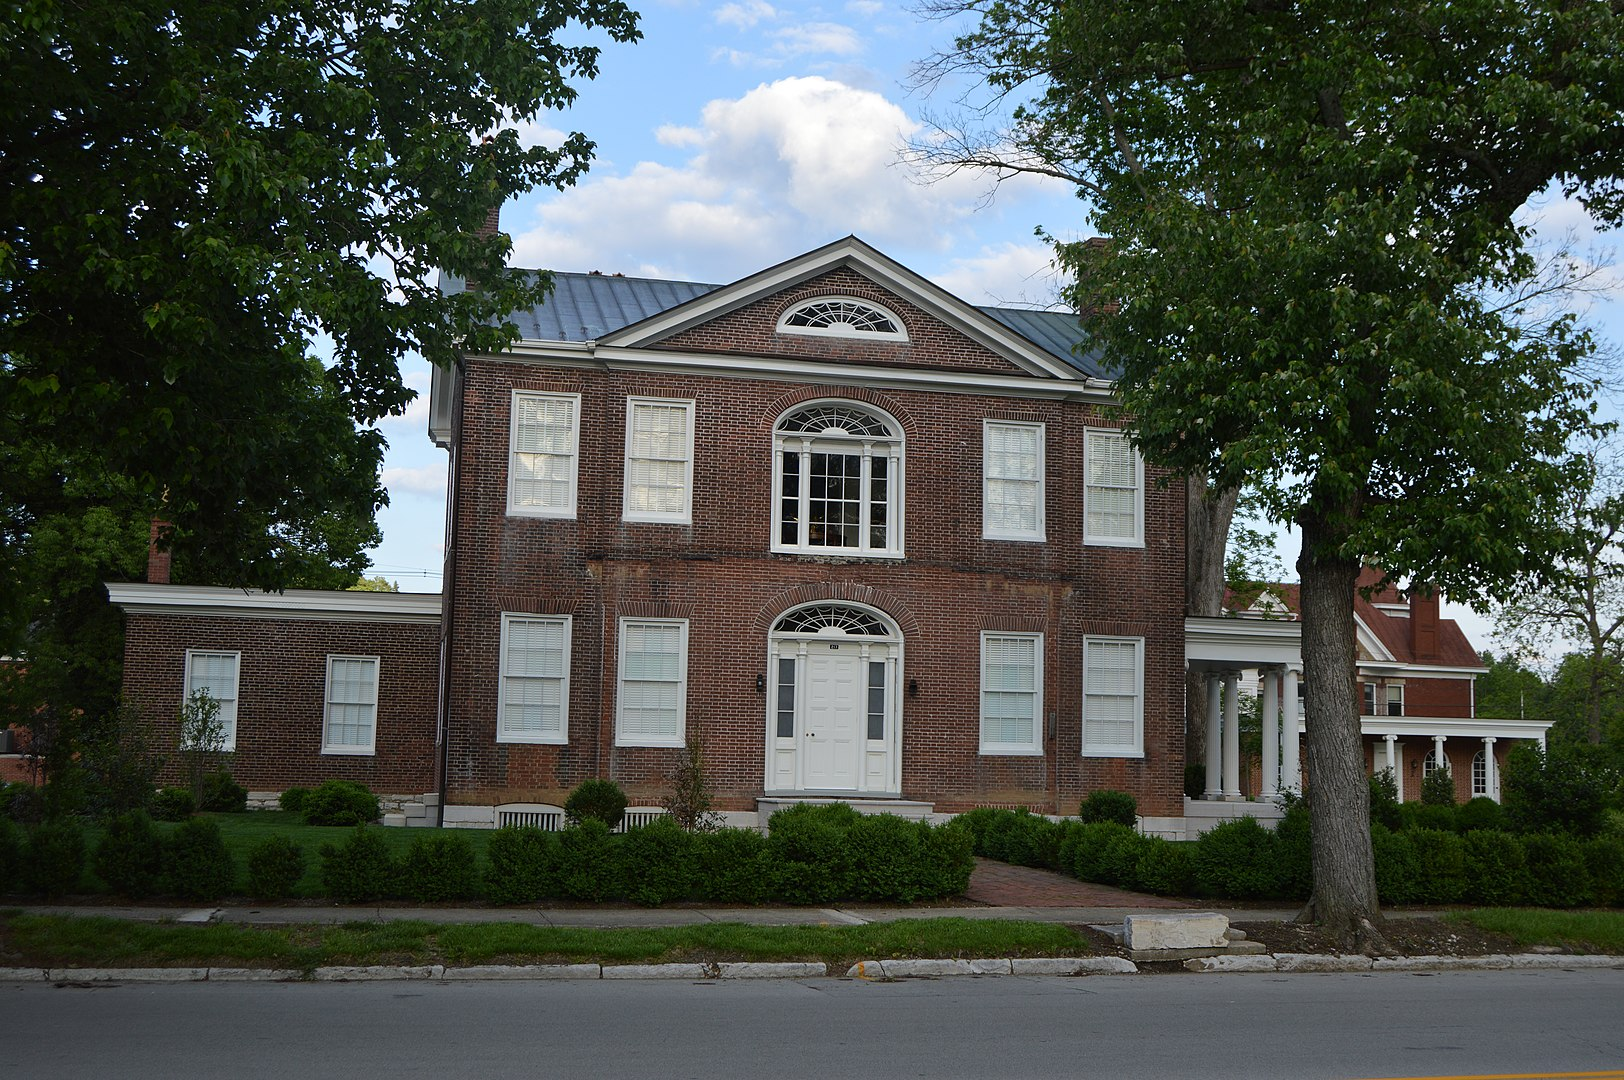 Governor Charles S. Morehead House